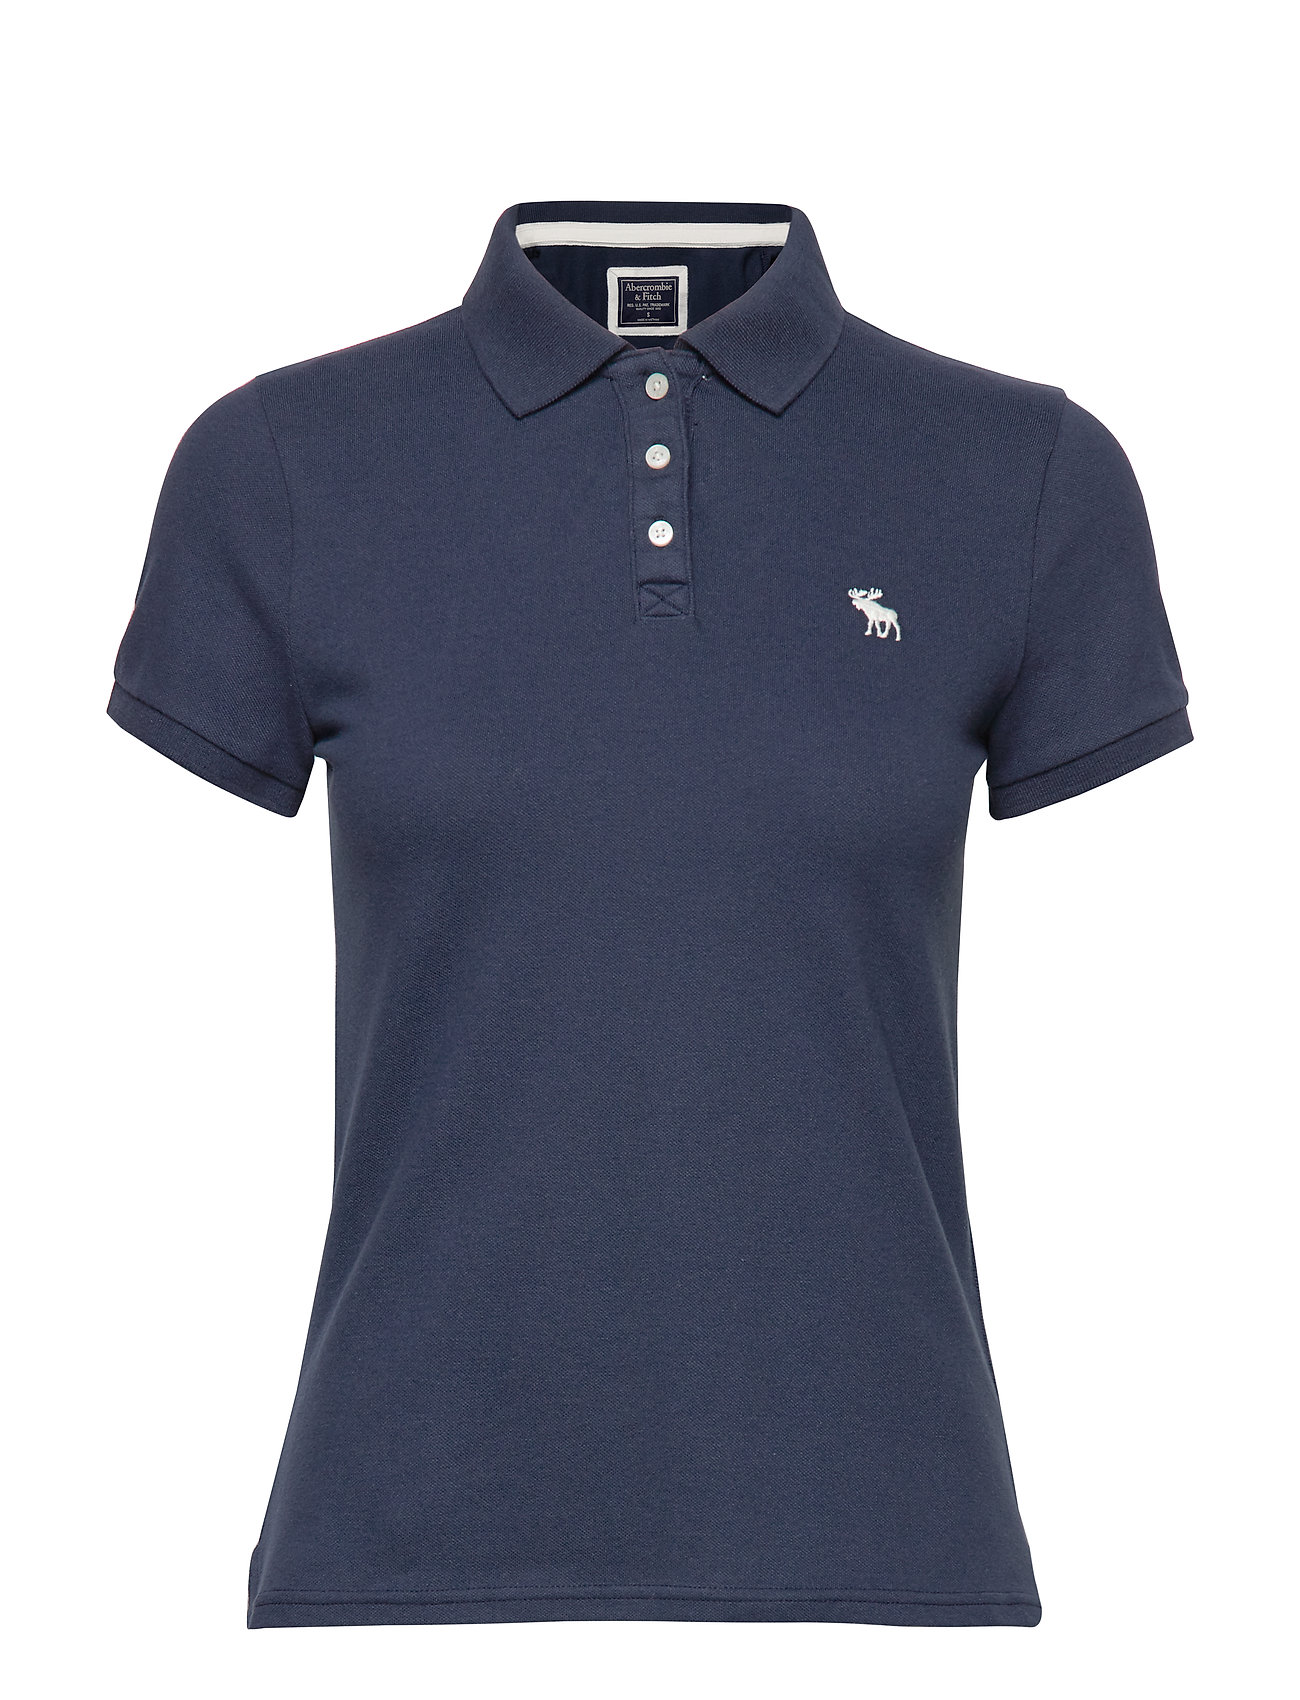 Abercrombie & Fitch Short Sleeve Polo - MED BLUE DD